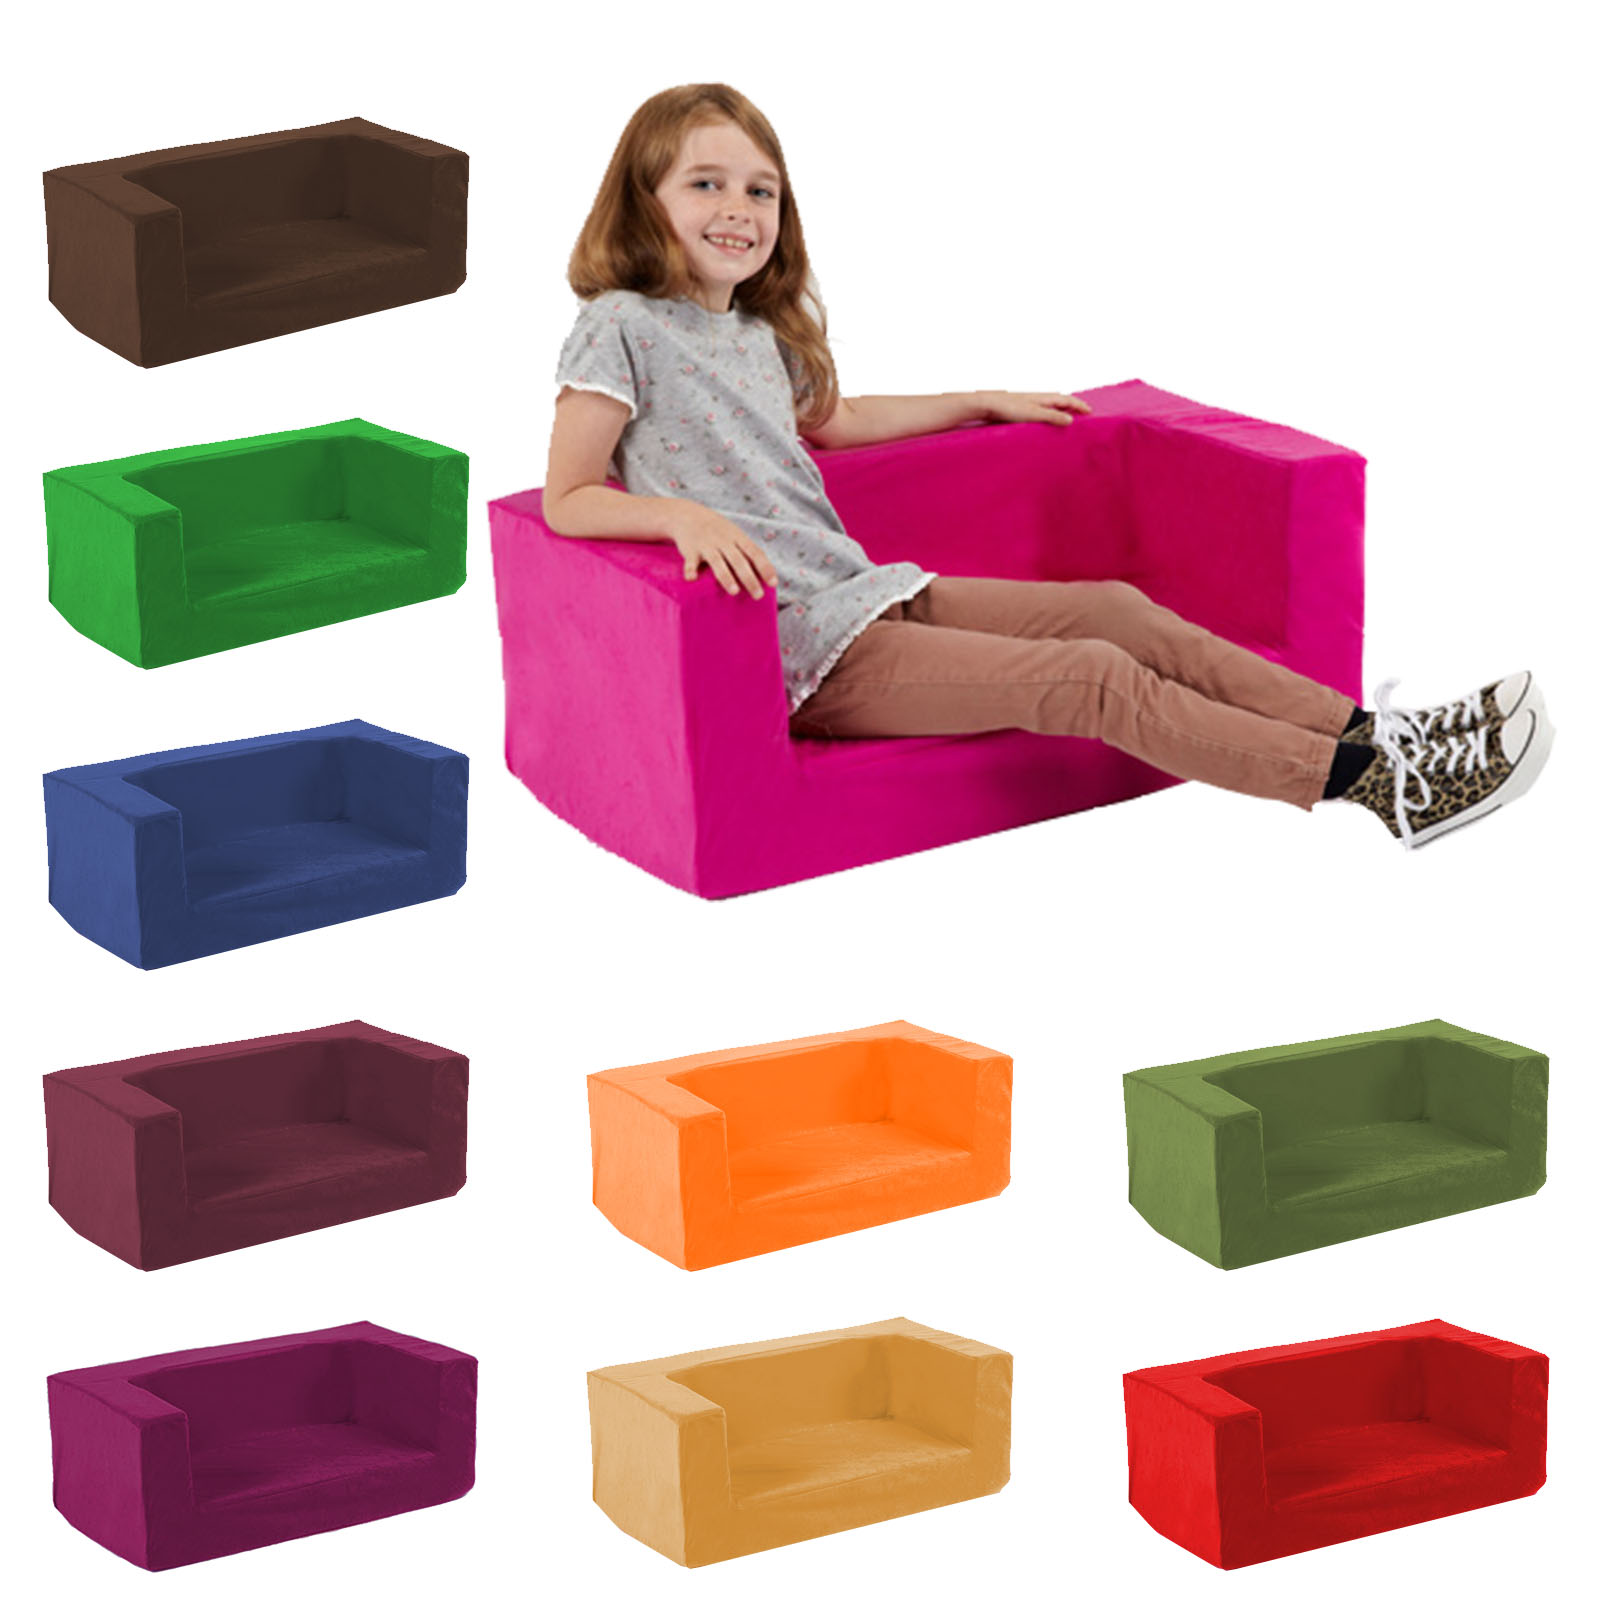 Best Sofa Sectional Material For Kids: Kids Children's Double Comfy Settee Toddlers Foam Sofa